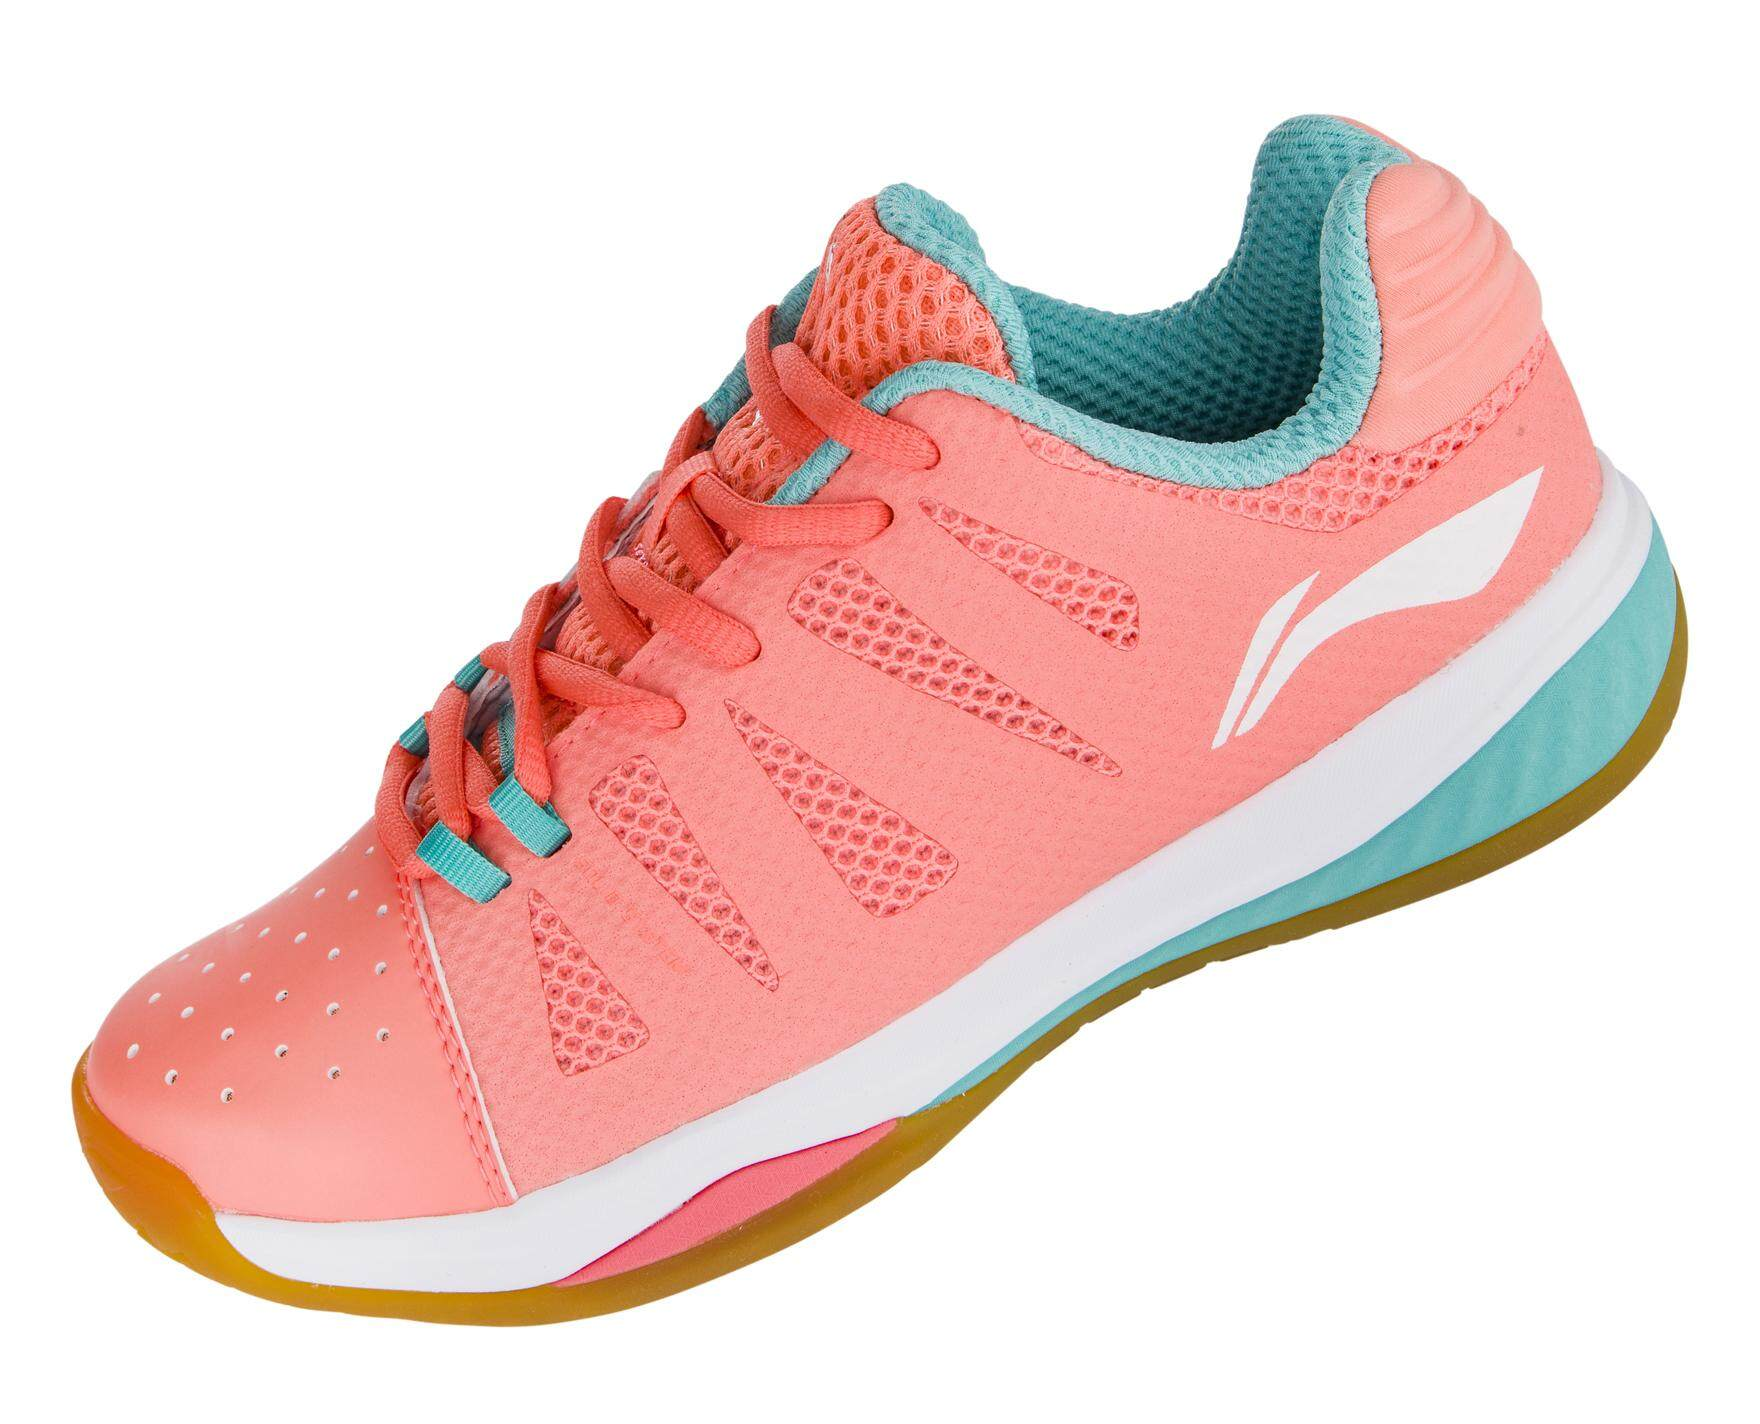 Li-Ning Dual Cloud Women's Badminton Shoes - Orange AYTN006-3